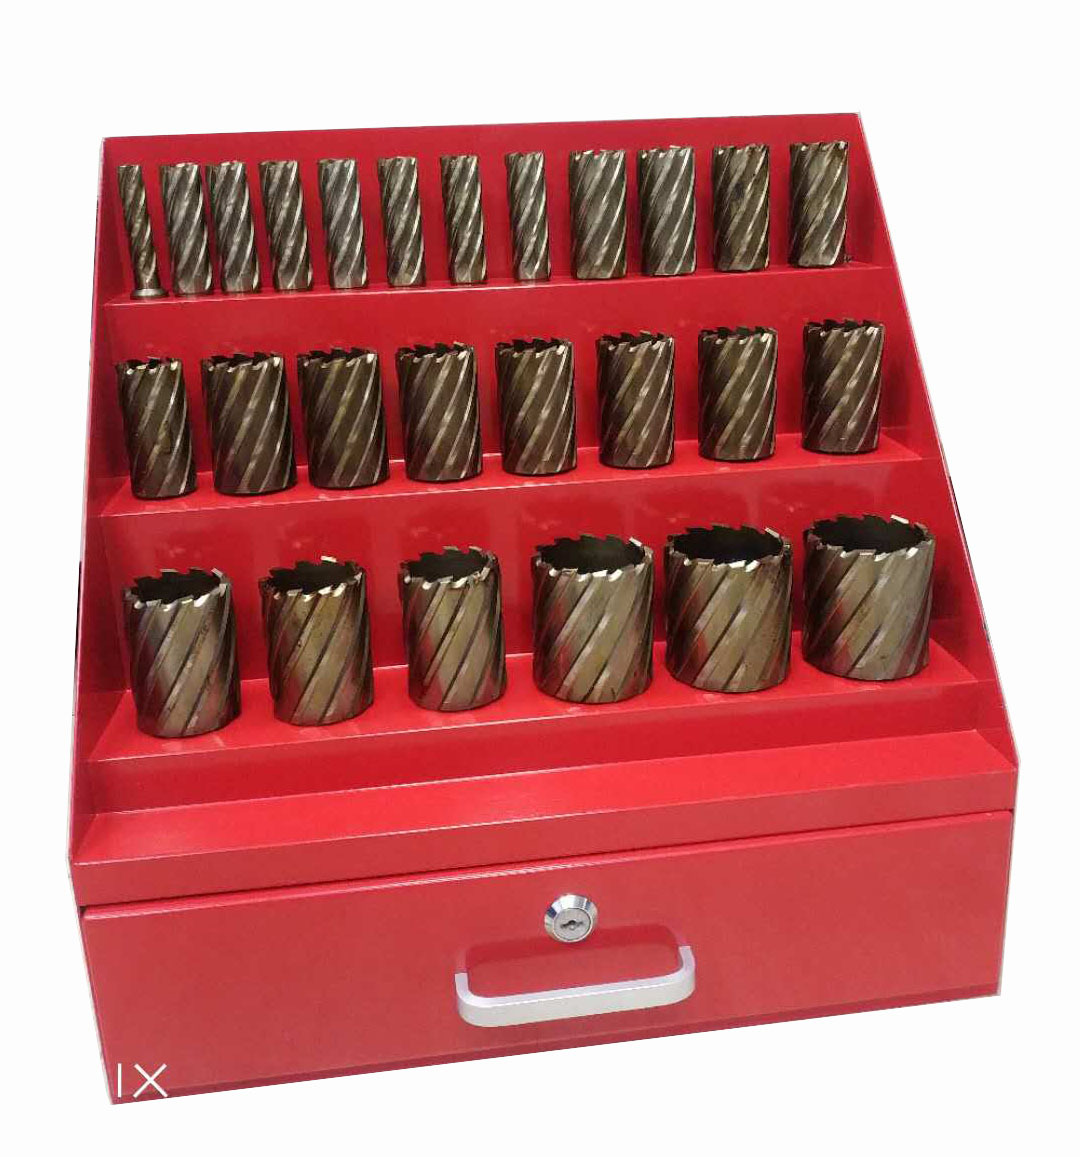 26pcs Annular Cutter Steel Box